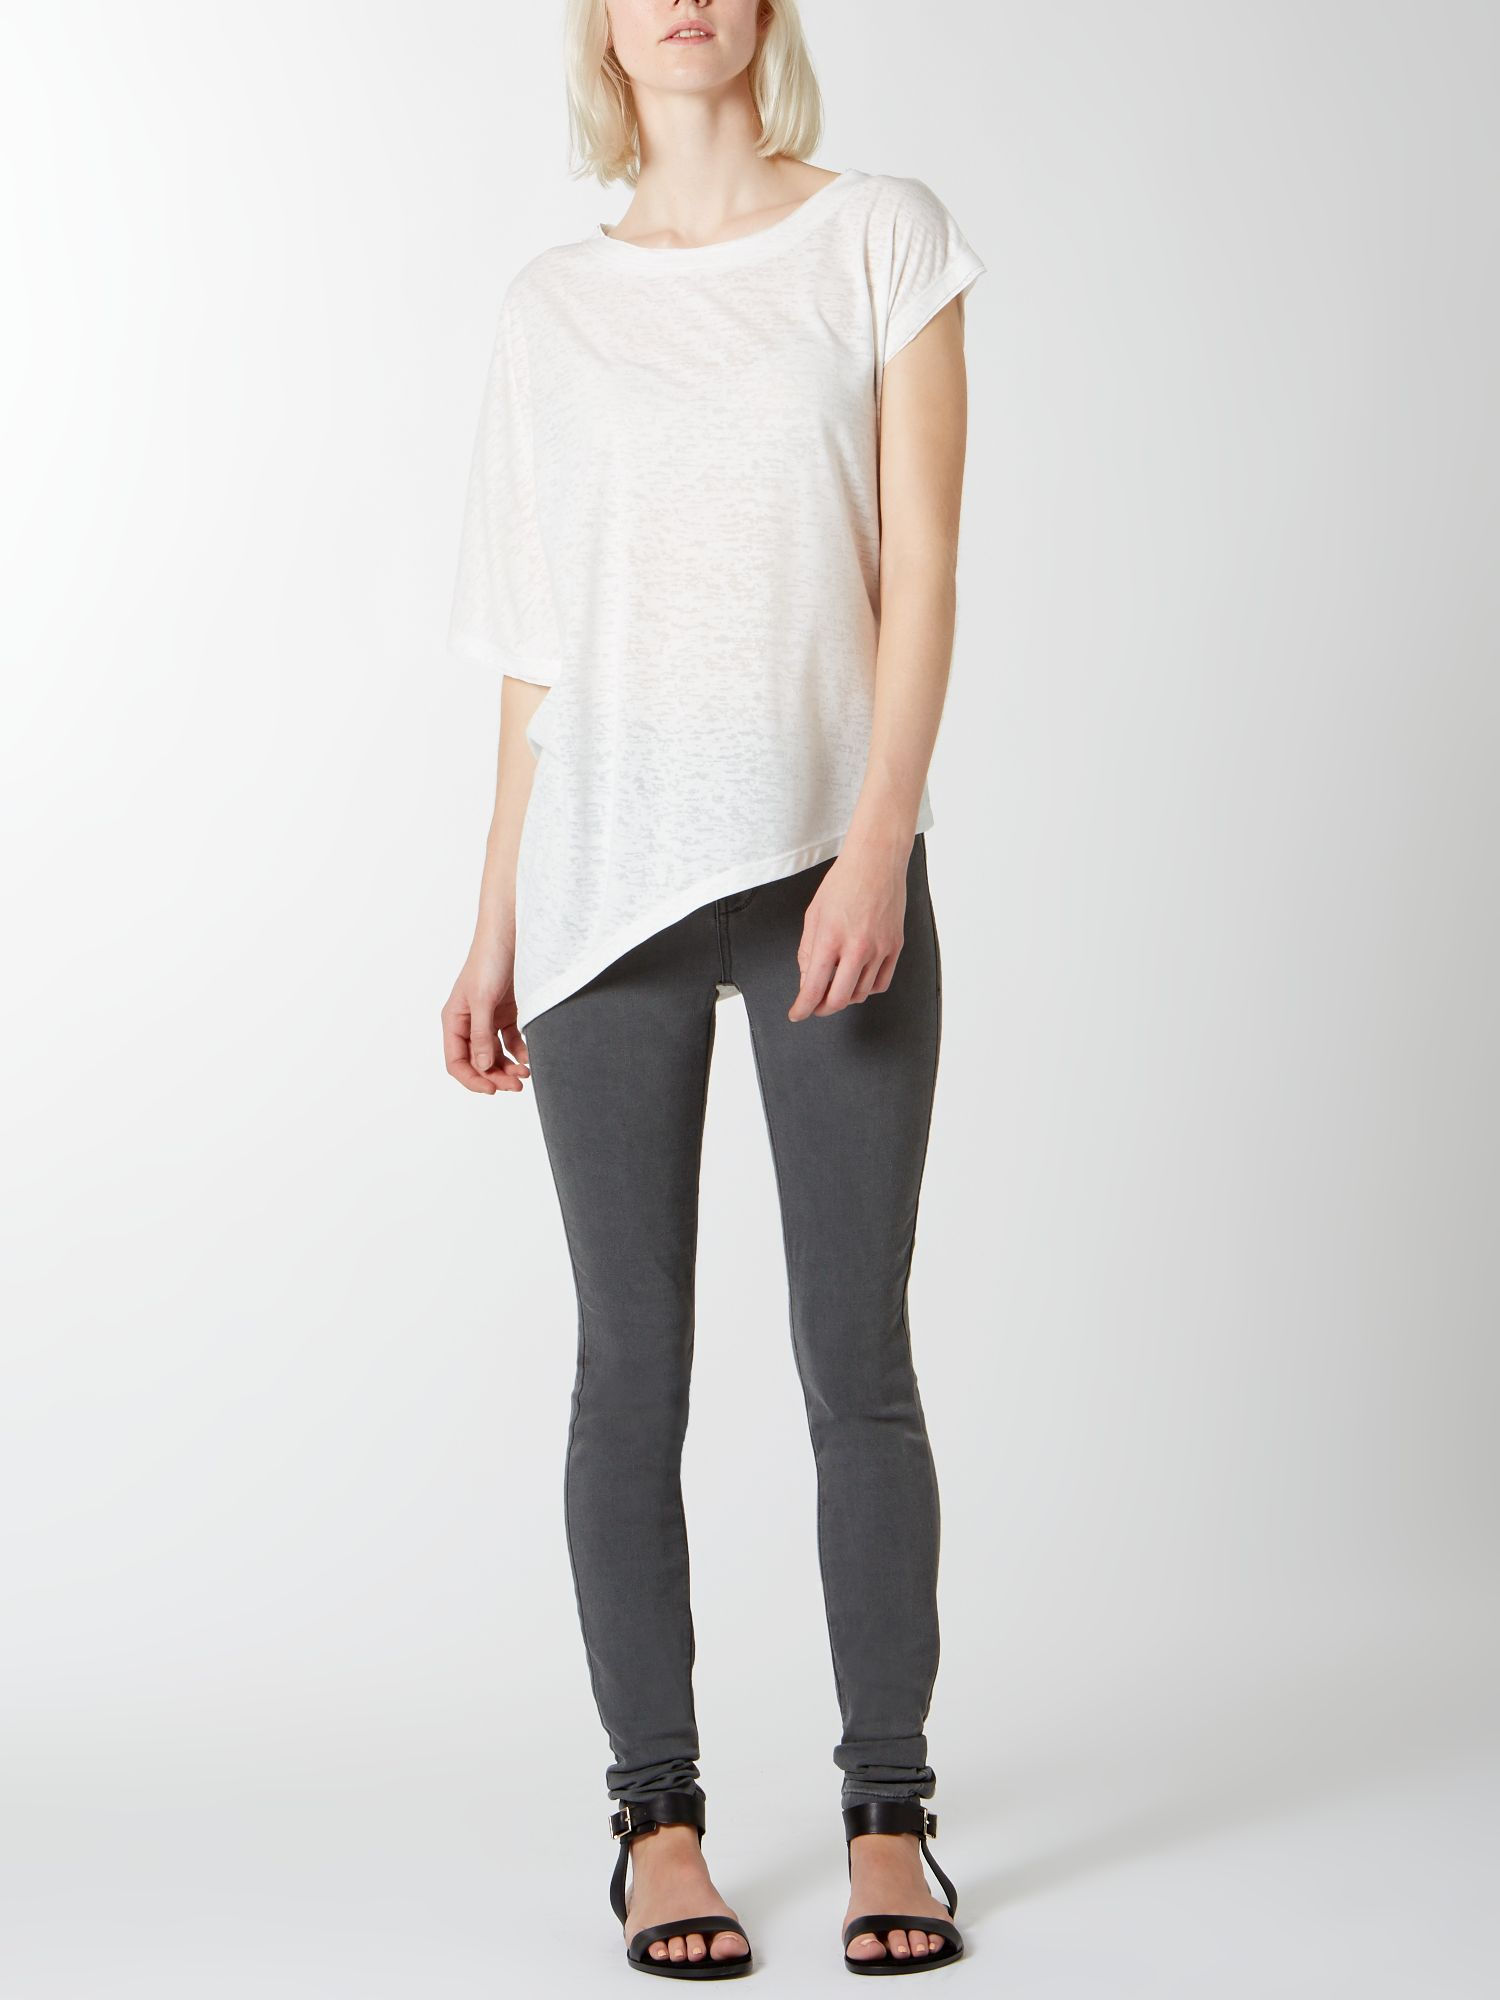 Asymmetric burnout tee